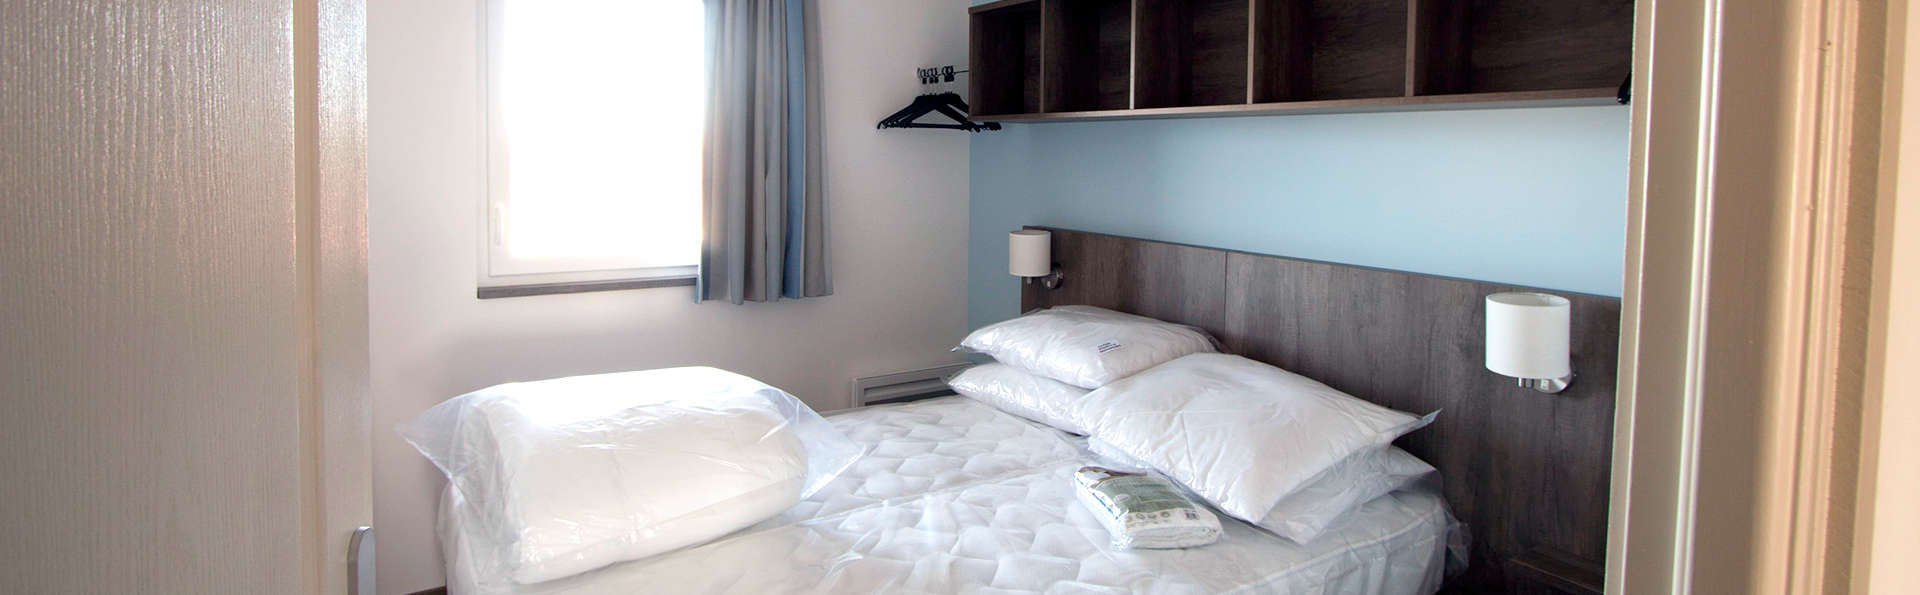 Holiday Suites Oye-Plage - EDIT_NEW_ROOM.jpg